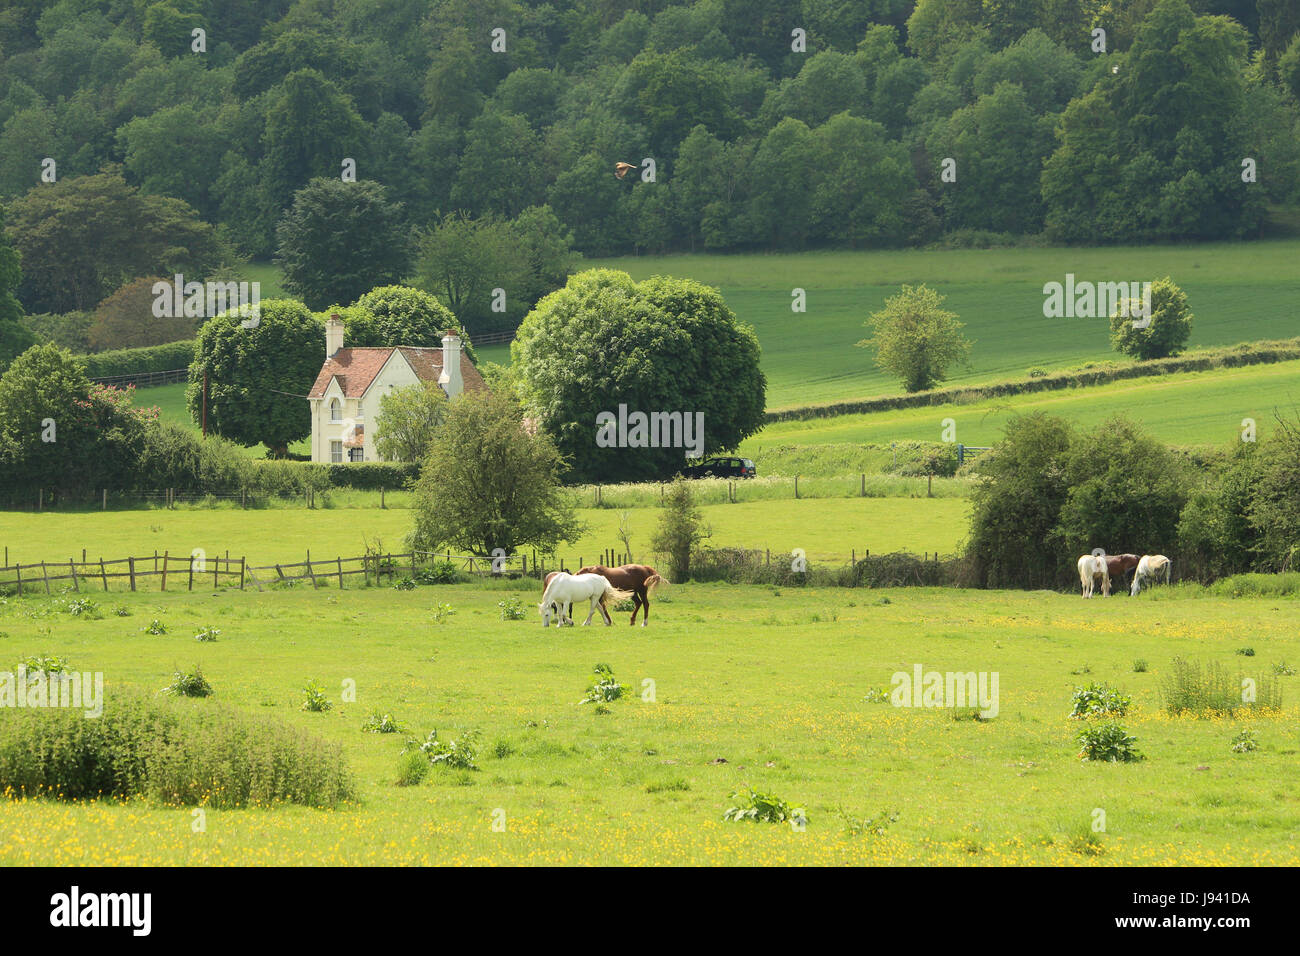 An English Rural Landscape in the Hambleden Valley in the Chiltern Hills with grazing horses - Stock Image